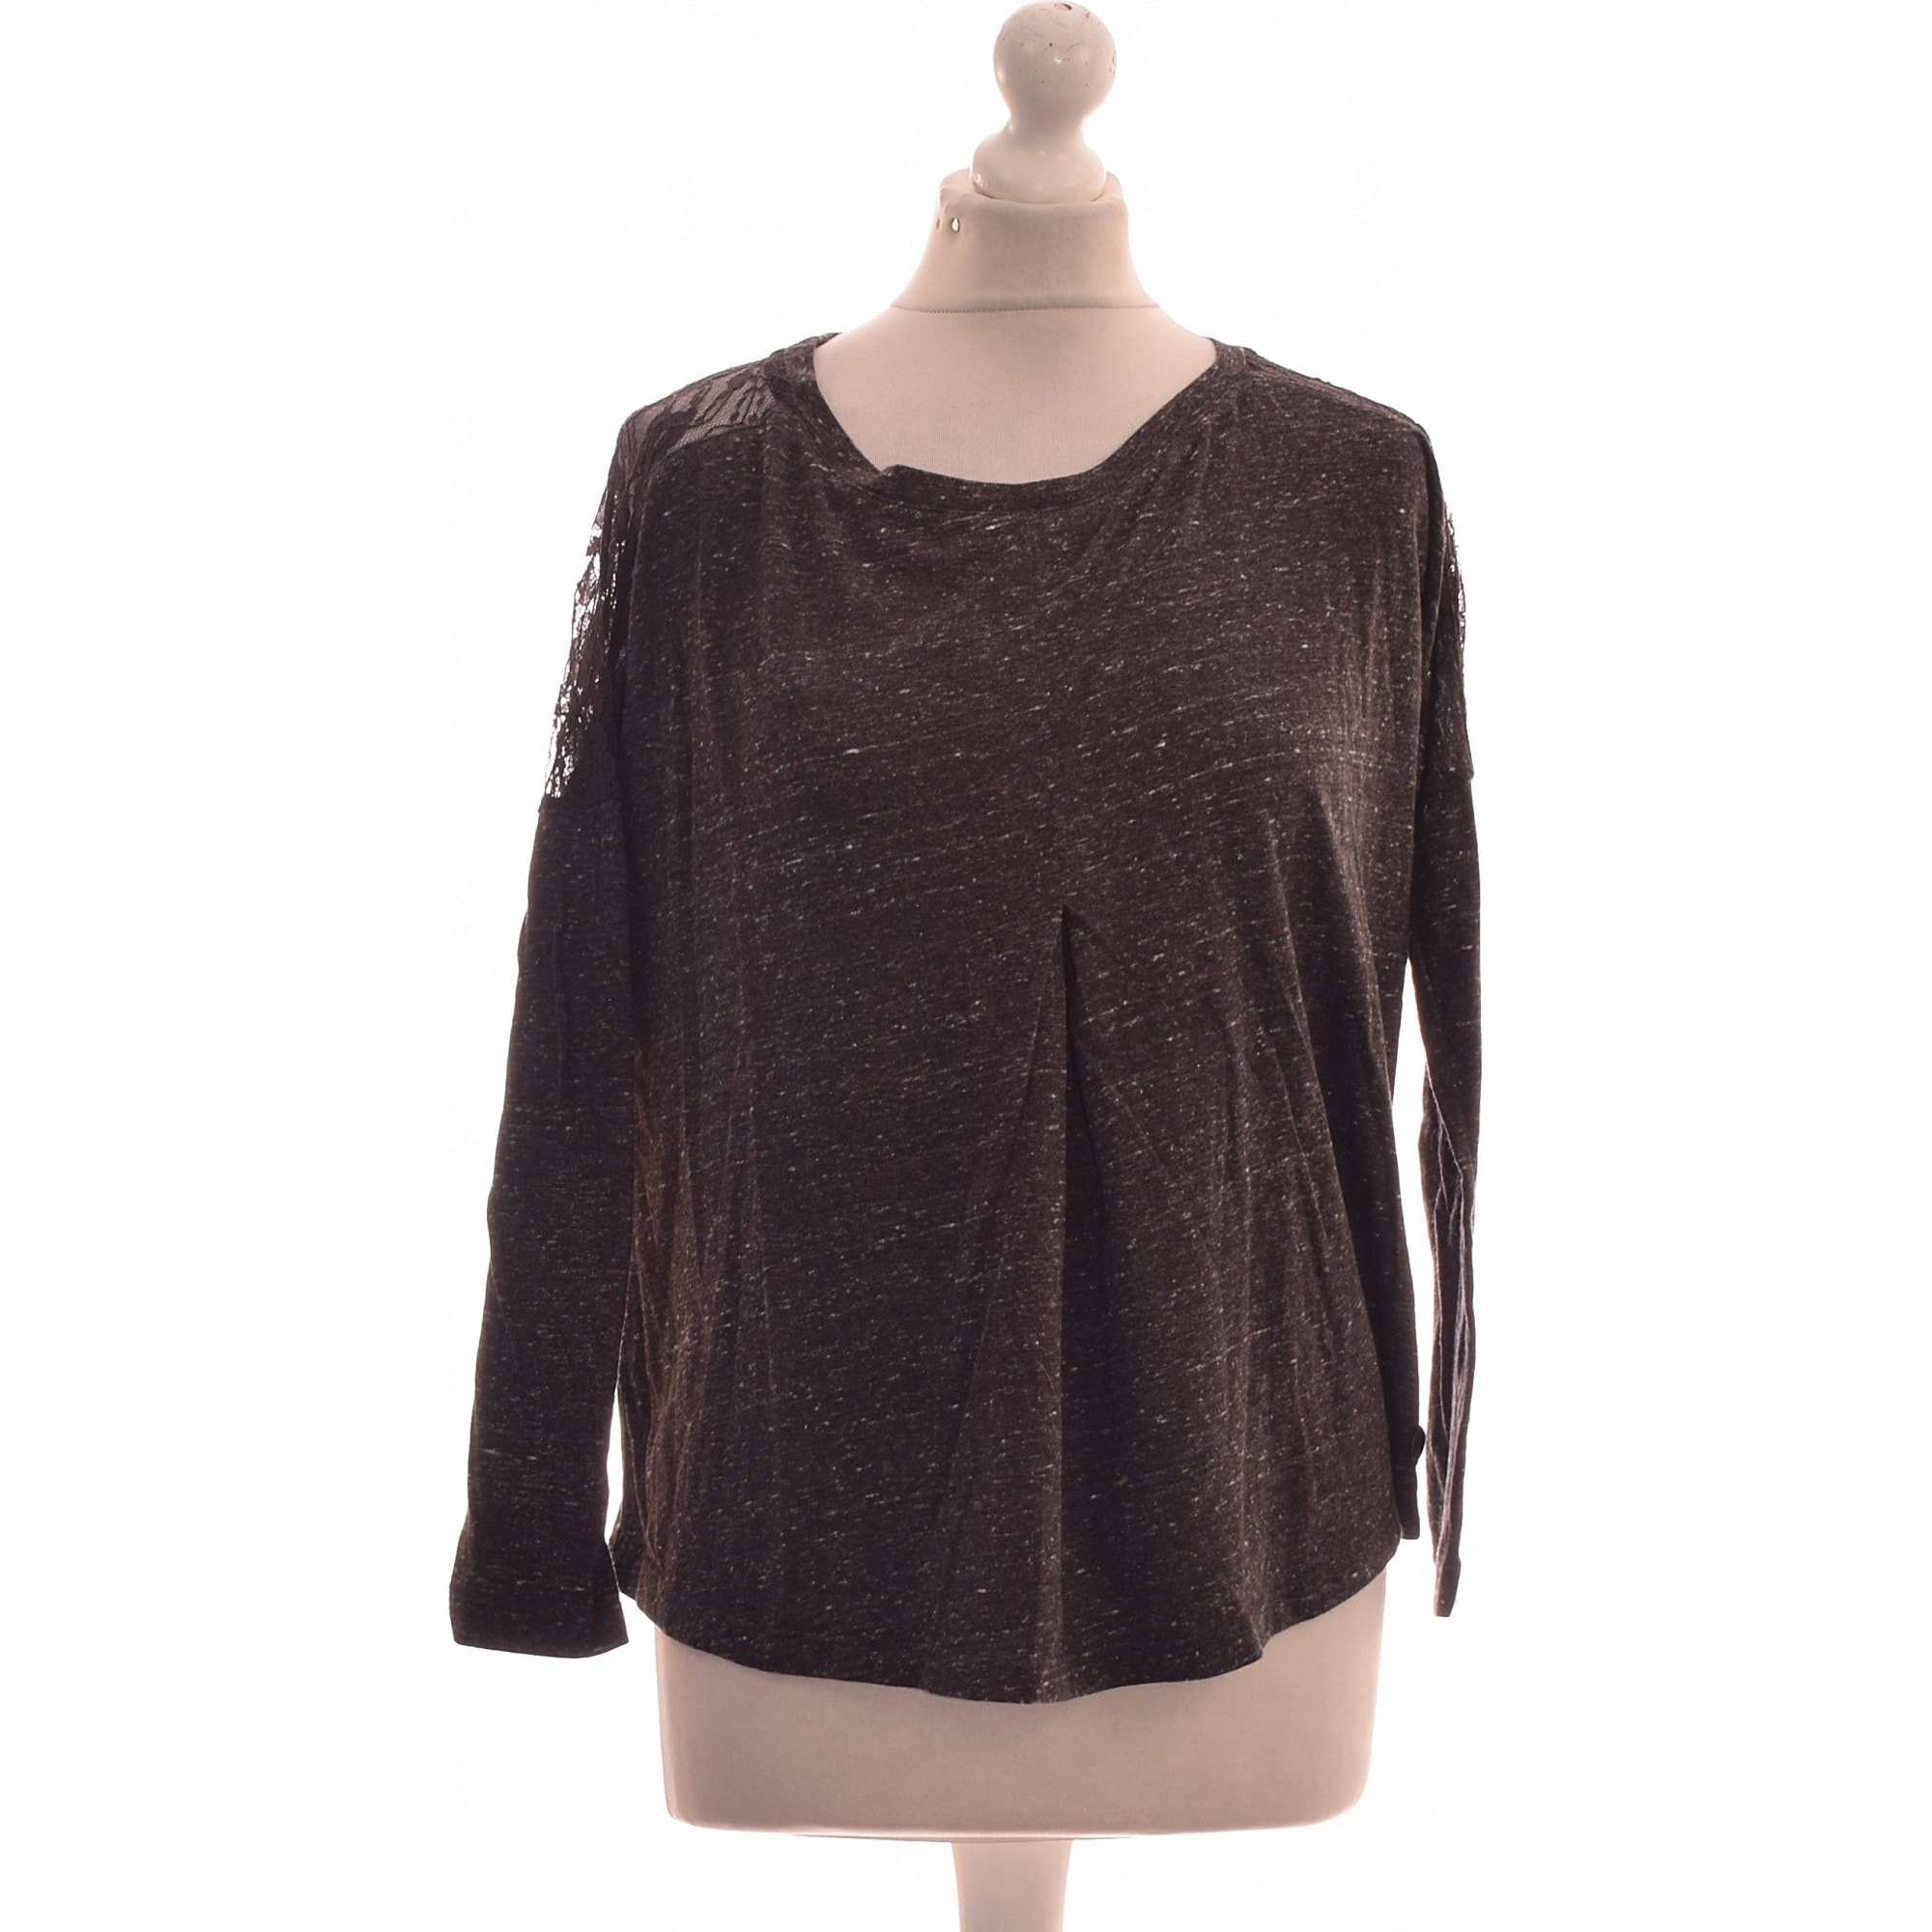 Top, tee-shirt TEDDY SMITH Gris, anthracite